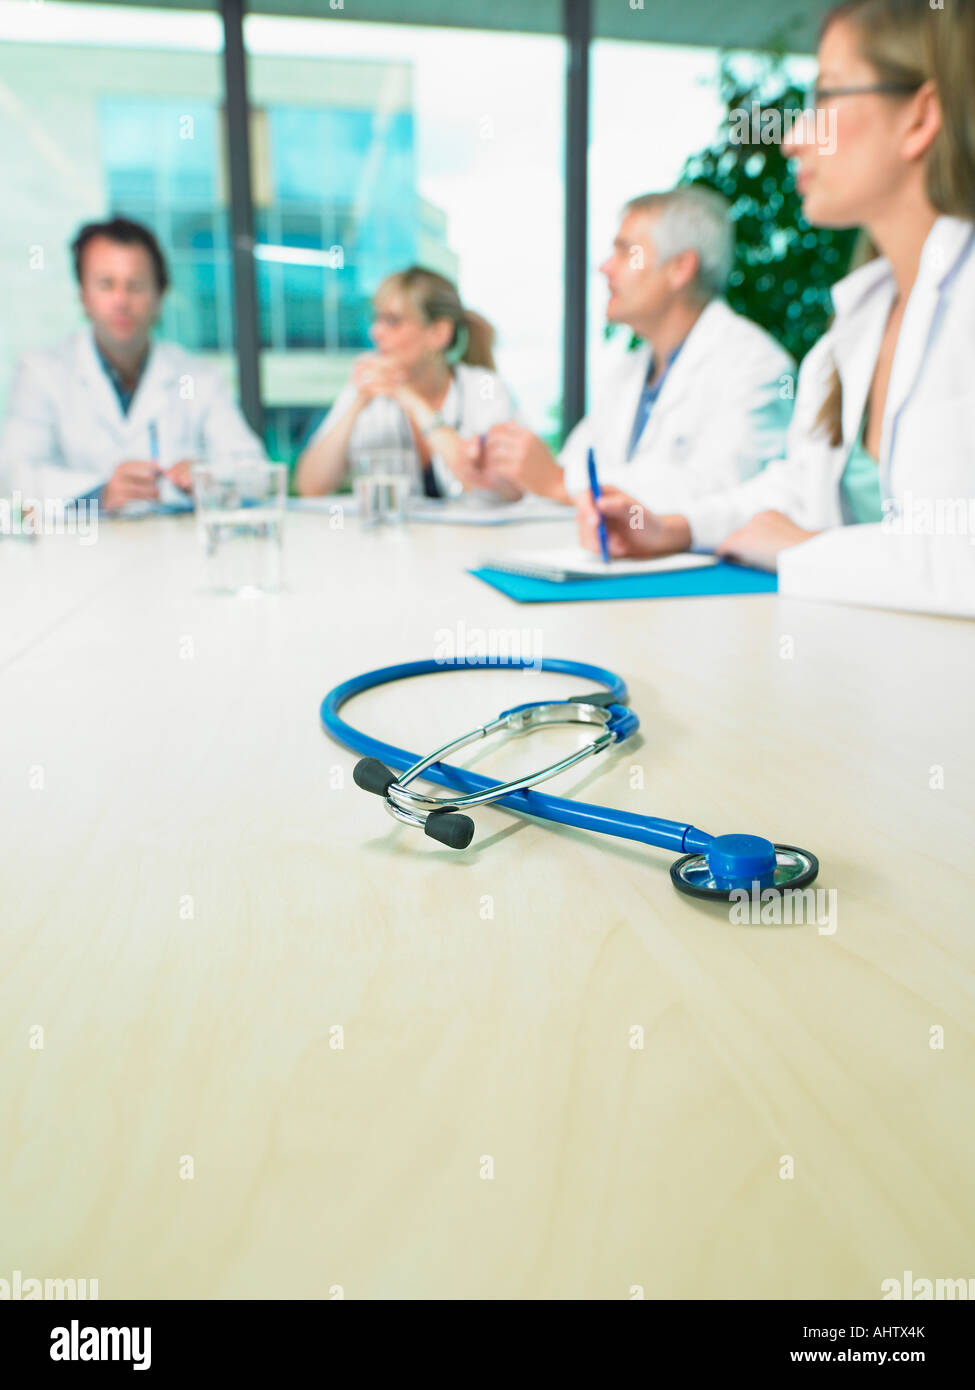 Business meeting of a group of doctors in a conference room around a table. Close up on stethoscope. - Stock Image